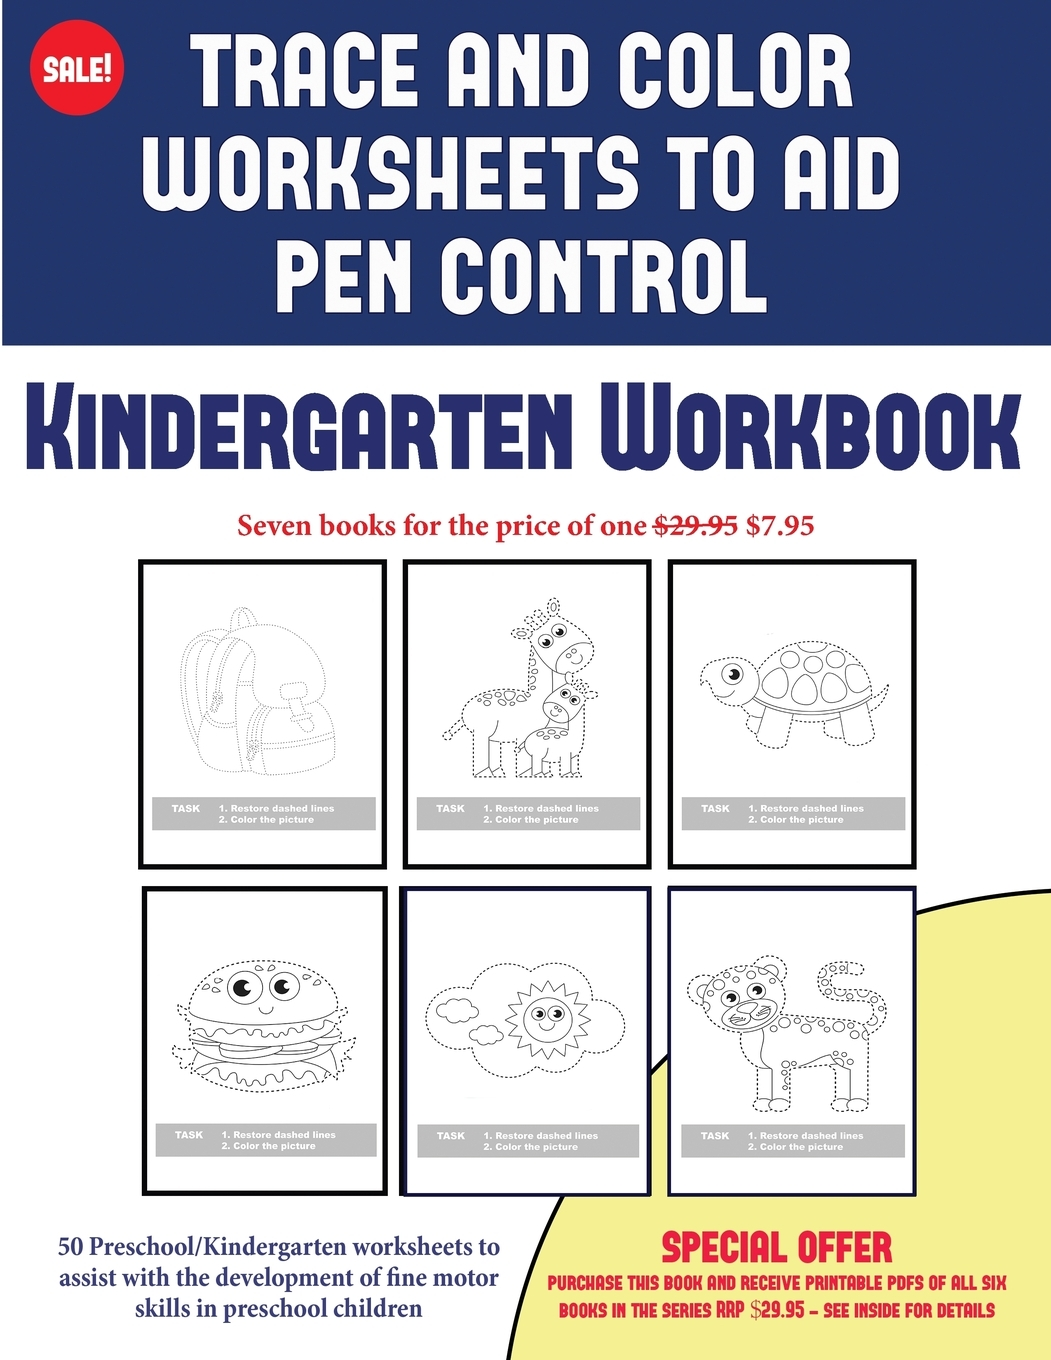 2 Kindergarten Workbook Trace And Color Worksheets To